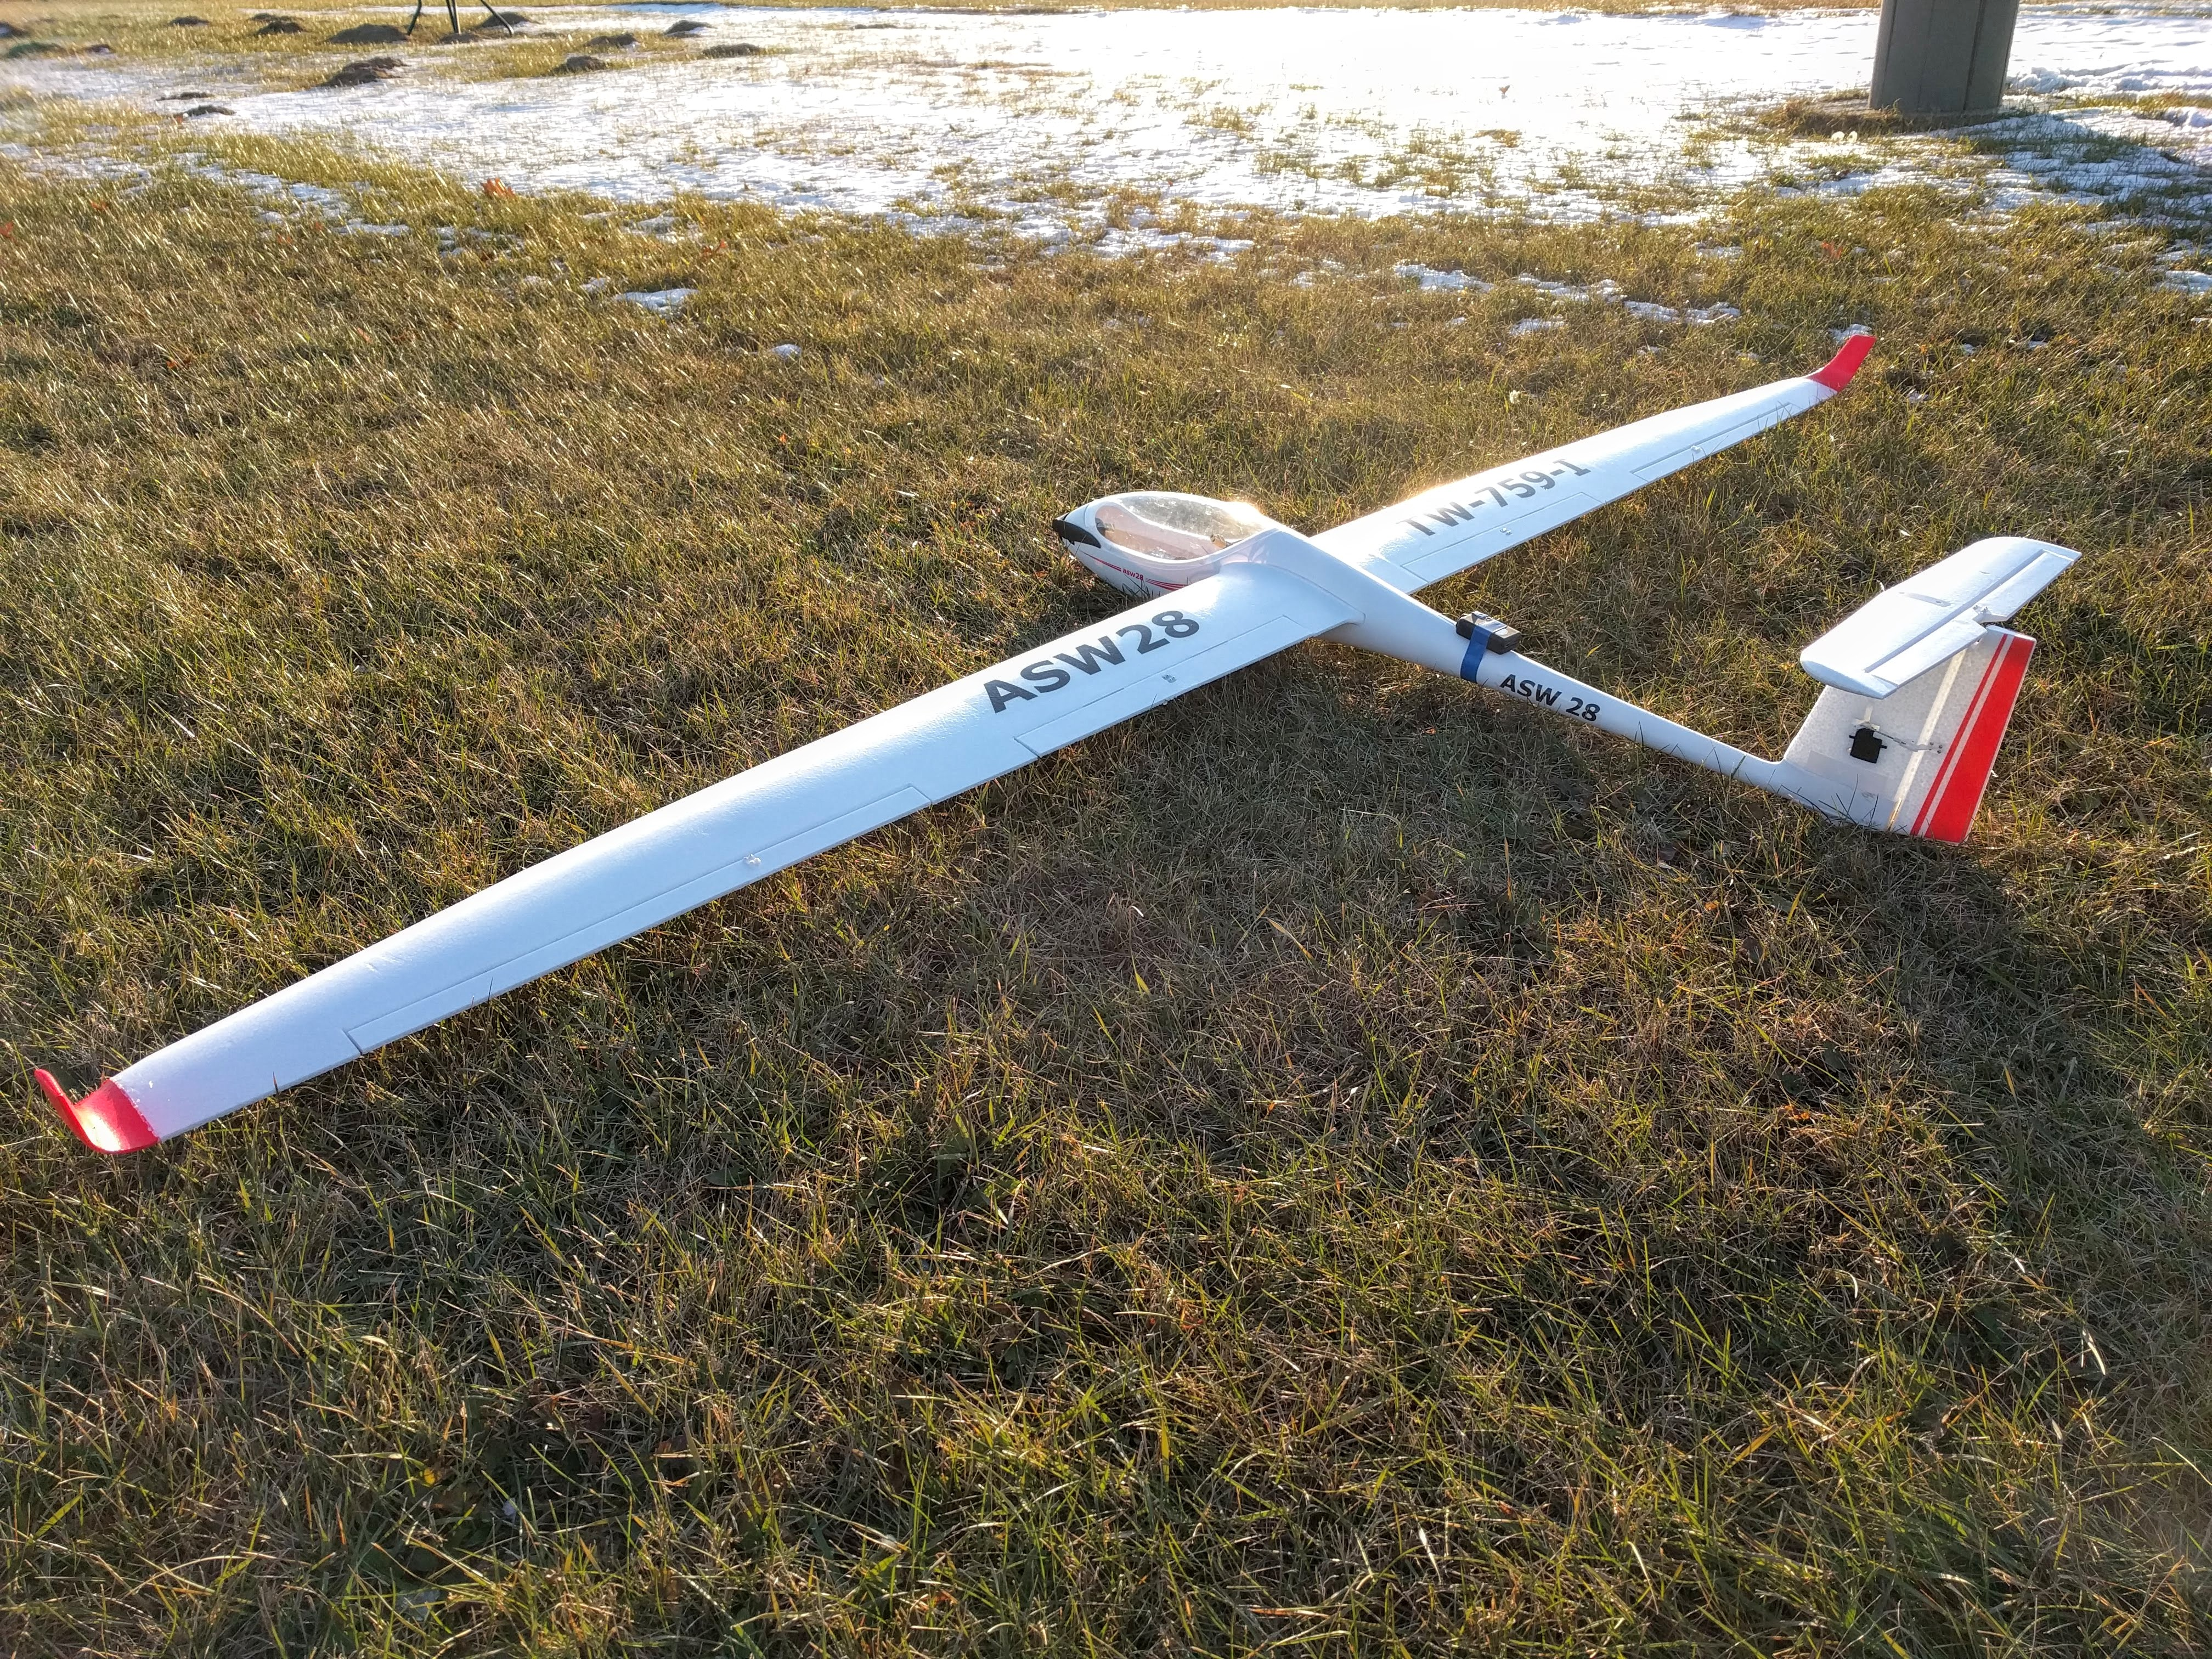 Successful first flight of my new ASW28. It has a big 100″ wing span and flies great!